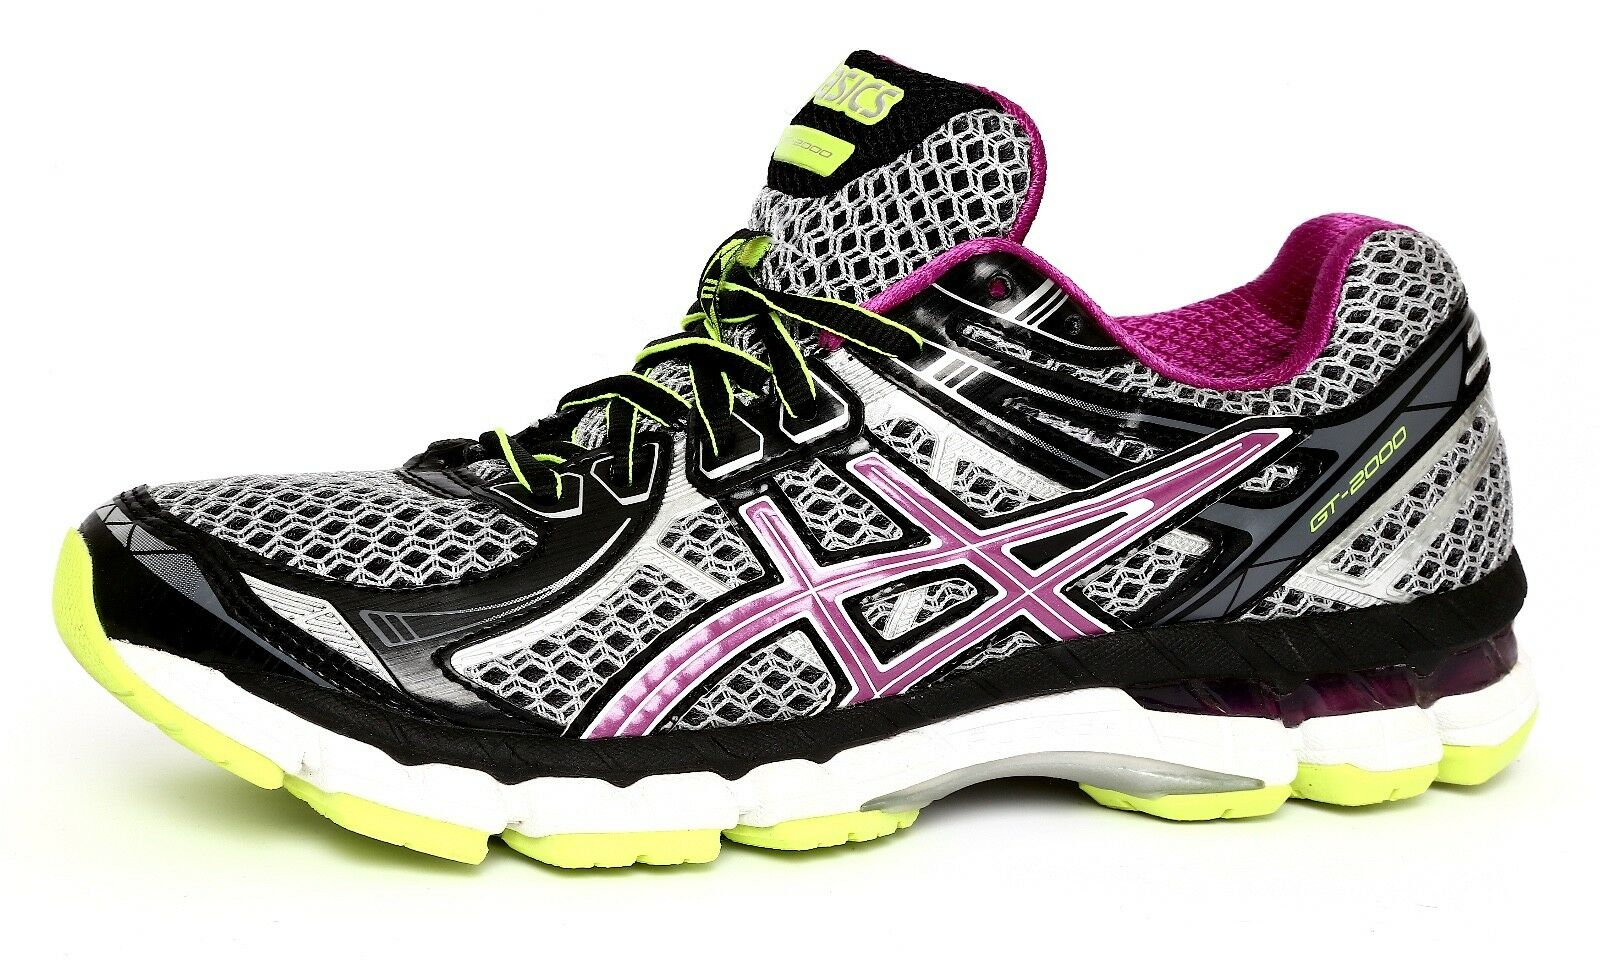 Asics GT-2000 Guidance Line Women's Gel Fluid Ride Multi Color Sneaker Sz 7 1095 Comfortable and good-looking